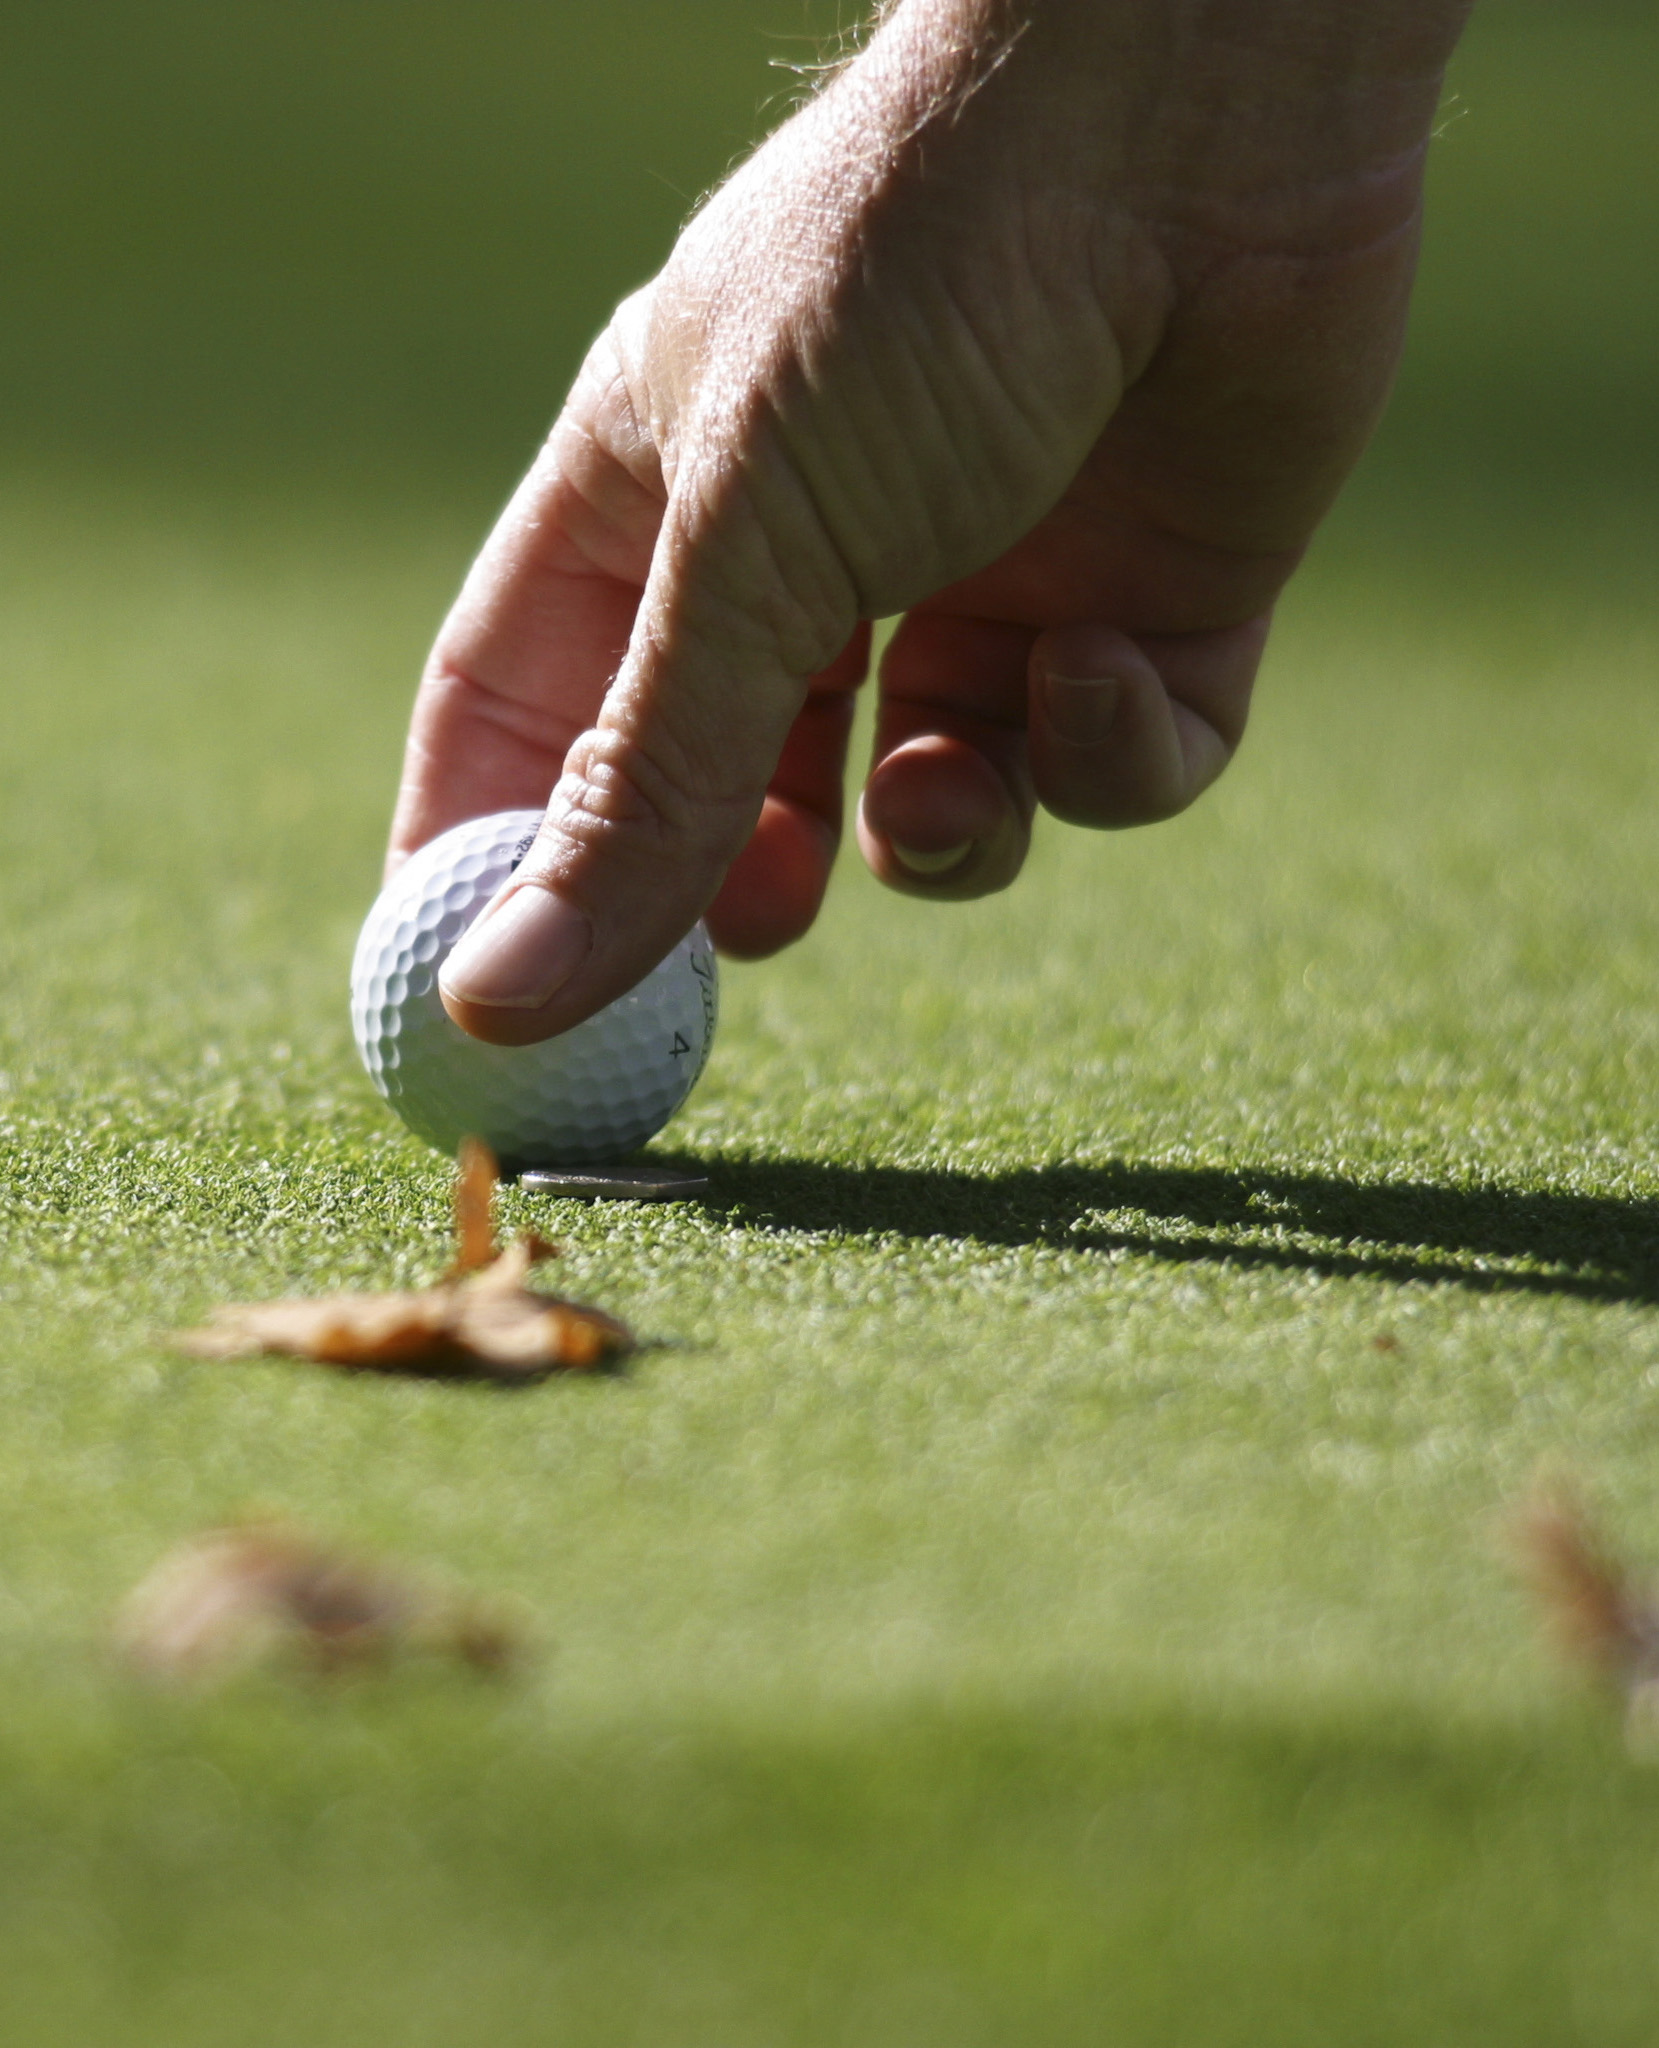 Find out the rules for marking your ball and loose impediments